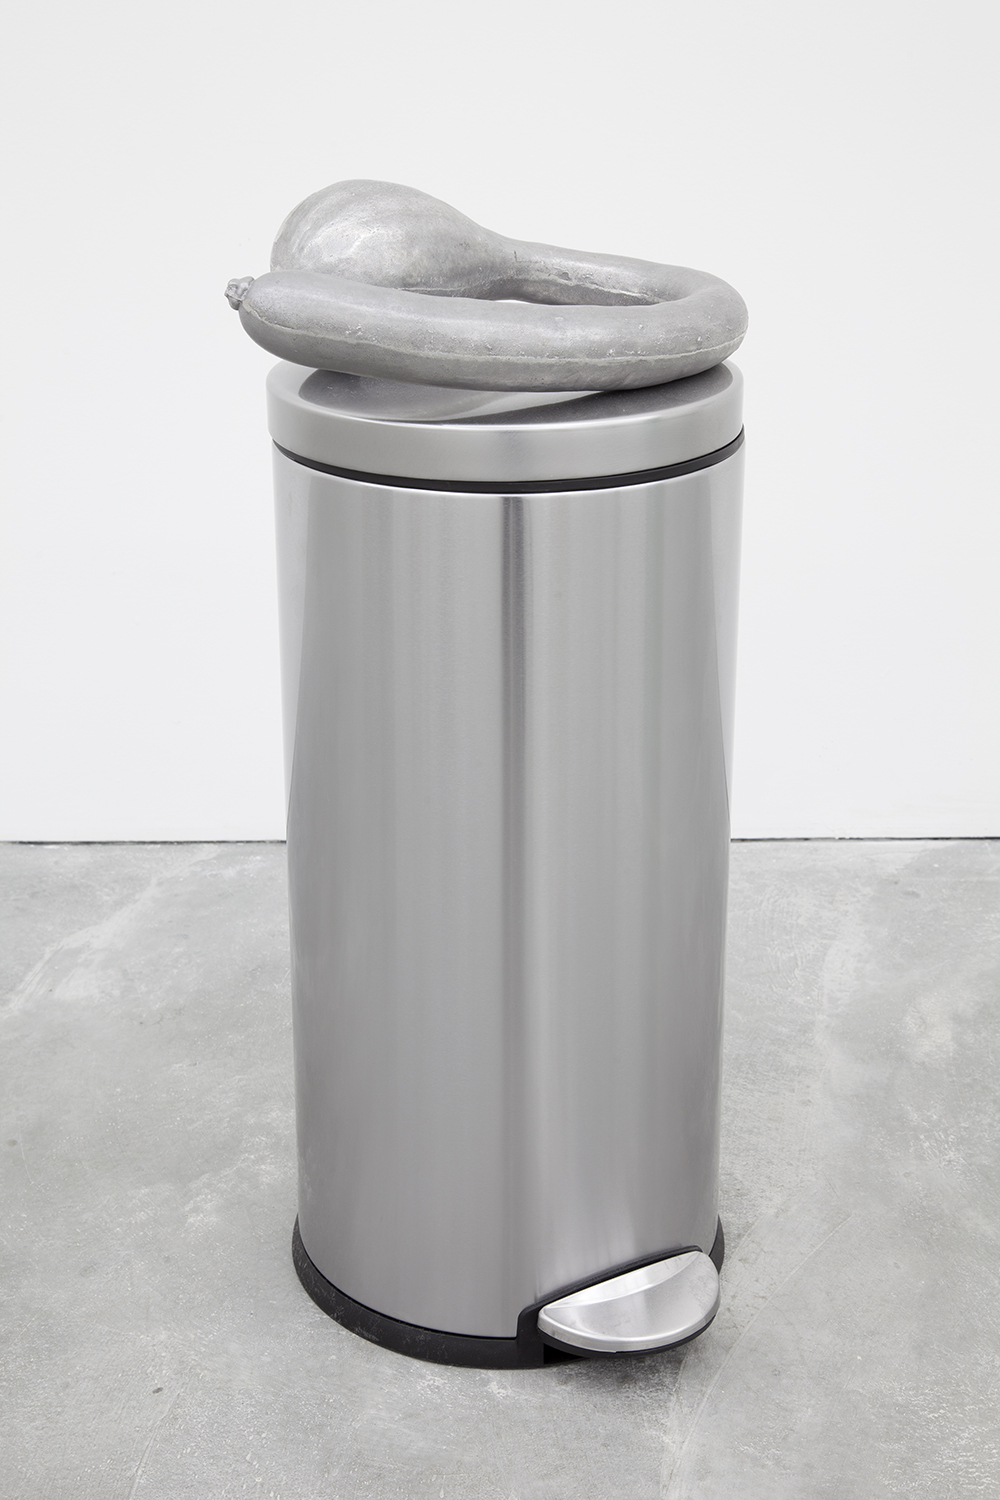 Miles Huston Matriarchal Uniformity, 2015 Aluminum, stainless steel trash can 30 x 15 x 12.5 inches